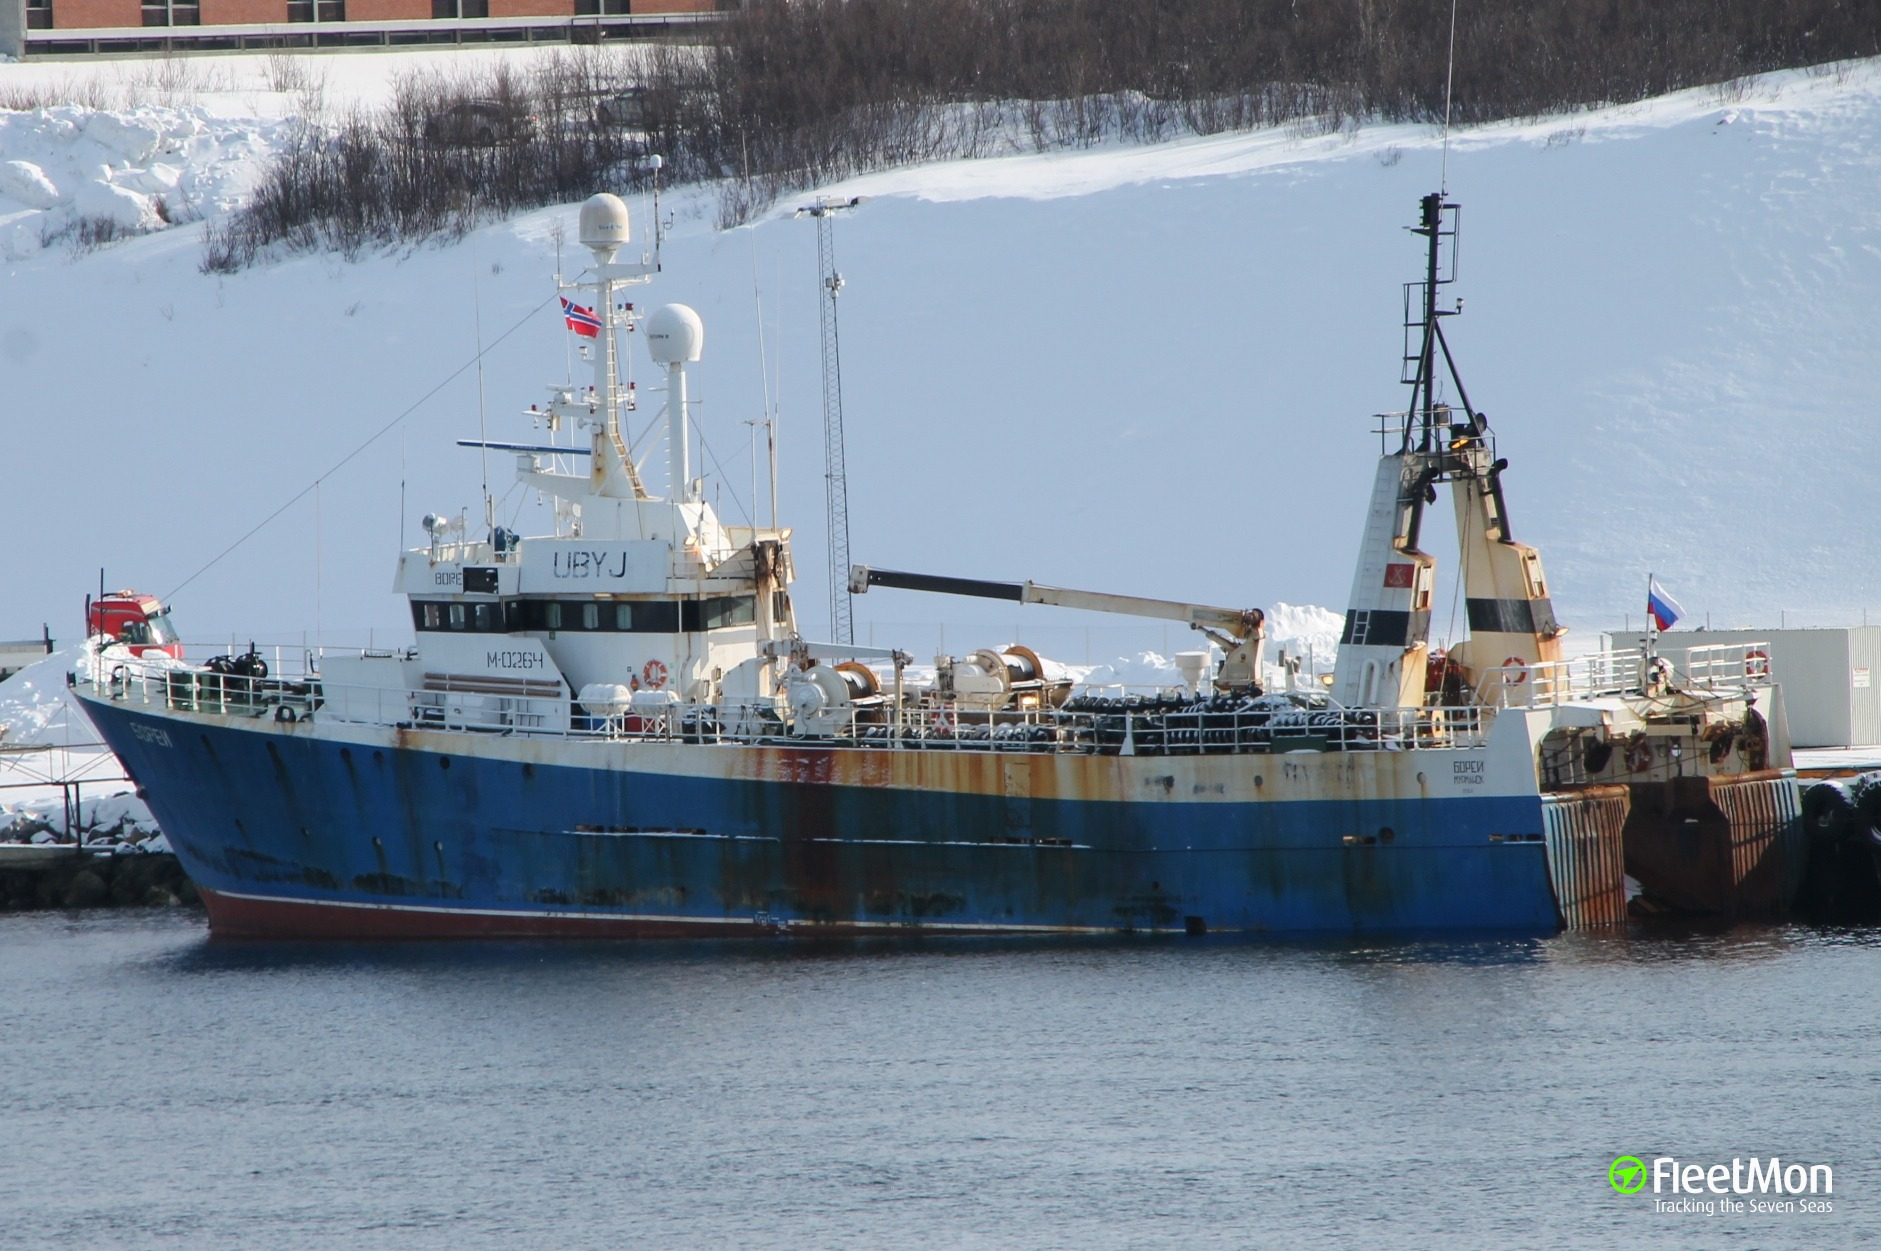 Disabled Russian trawler under tow of Norway CG ship